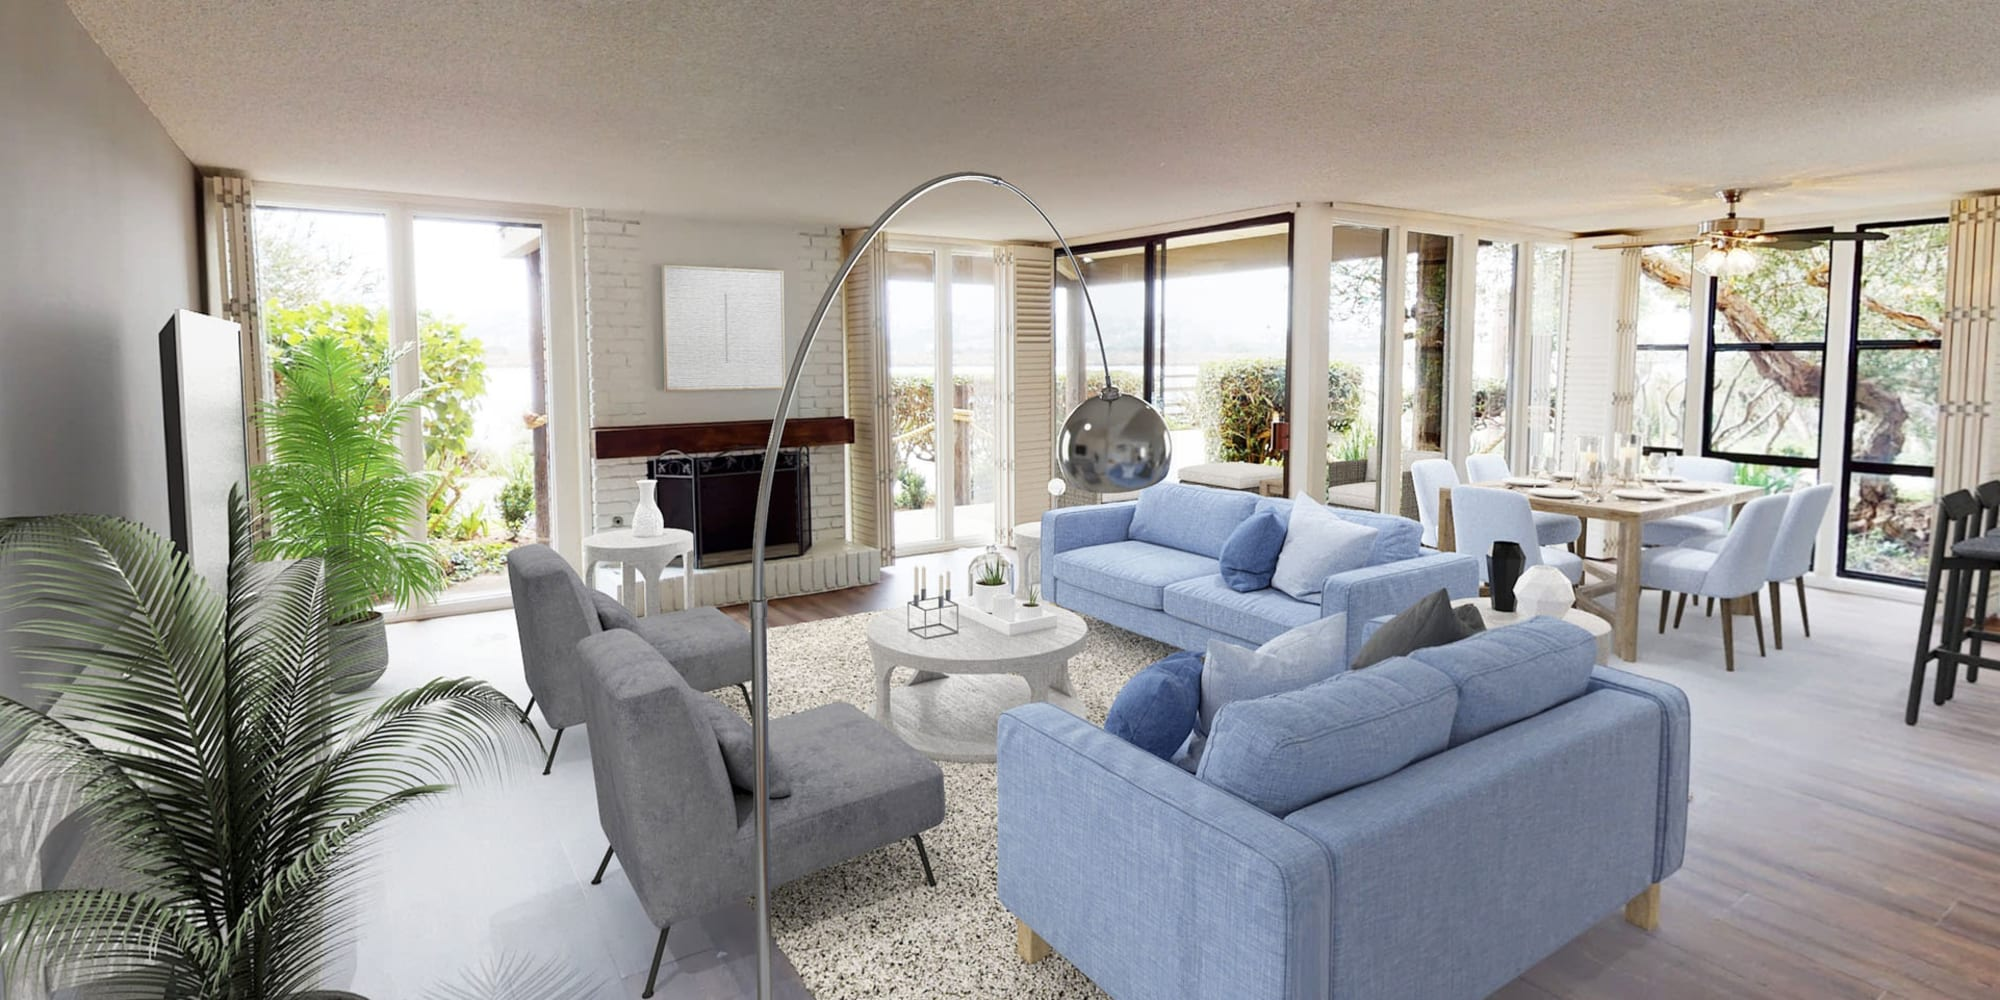 Three bedroom luxury waterfront home's living space with modern furnishings at Mariners Village in Marina del Rey, California